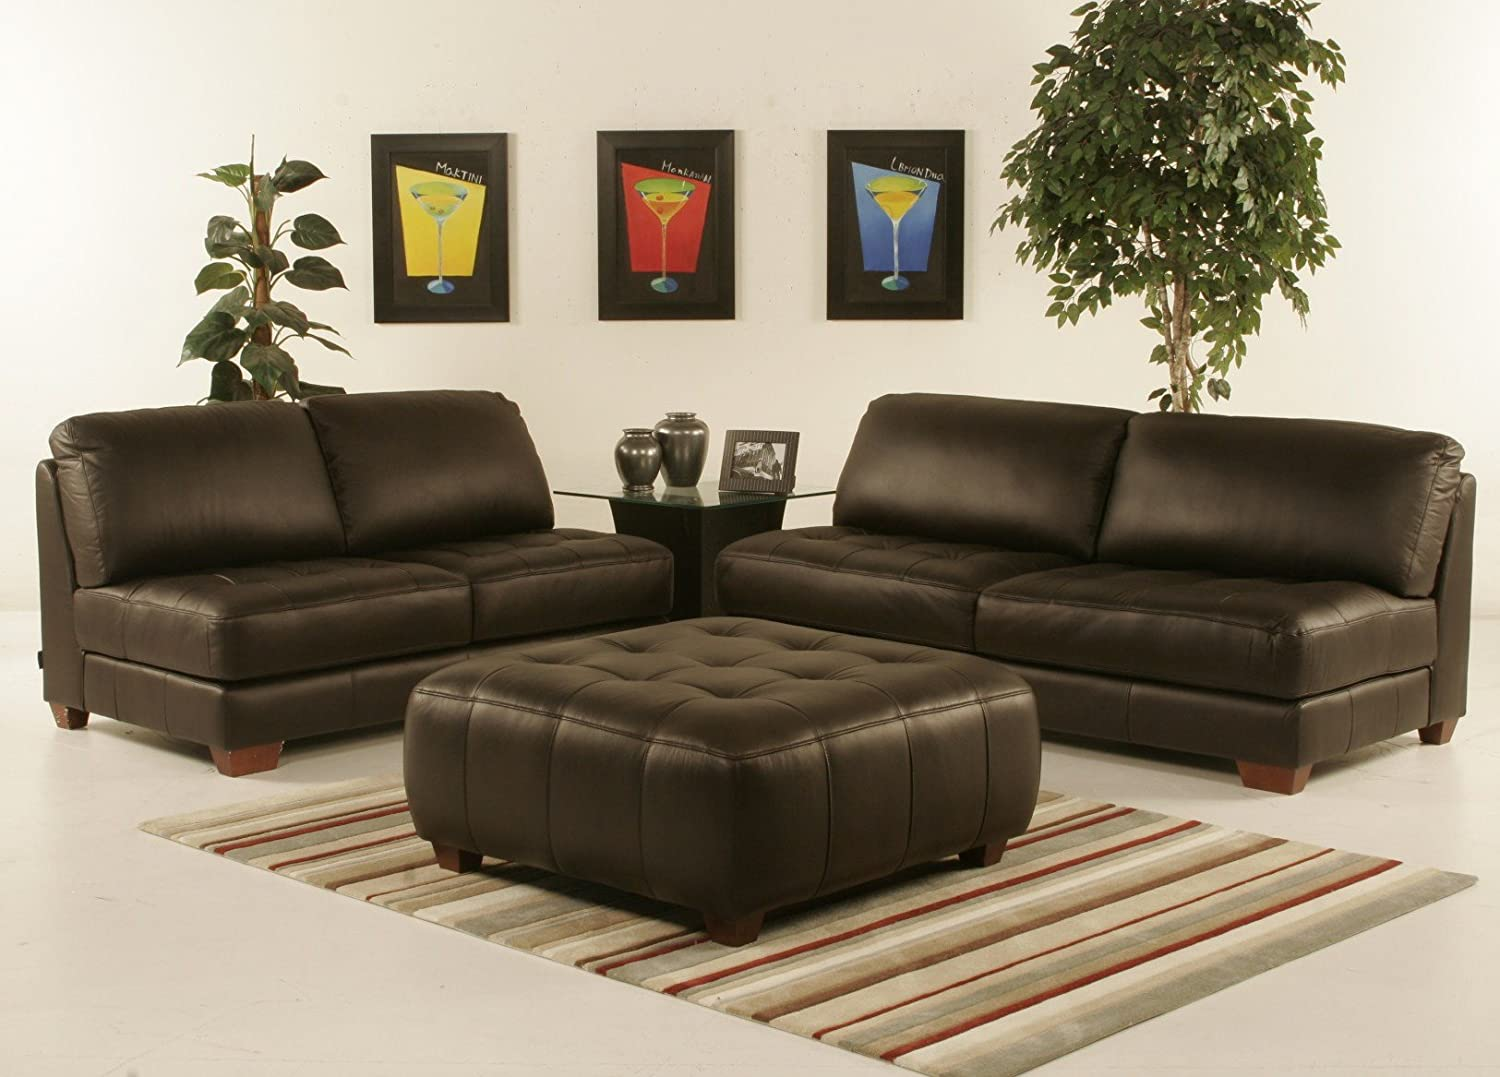 Excellent Amazon Com Diamond Sofa Zen Collection Armless All Leather Download Free Architecture Designs Scobabritishbridgeorg